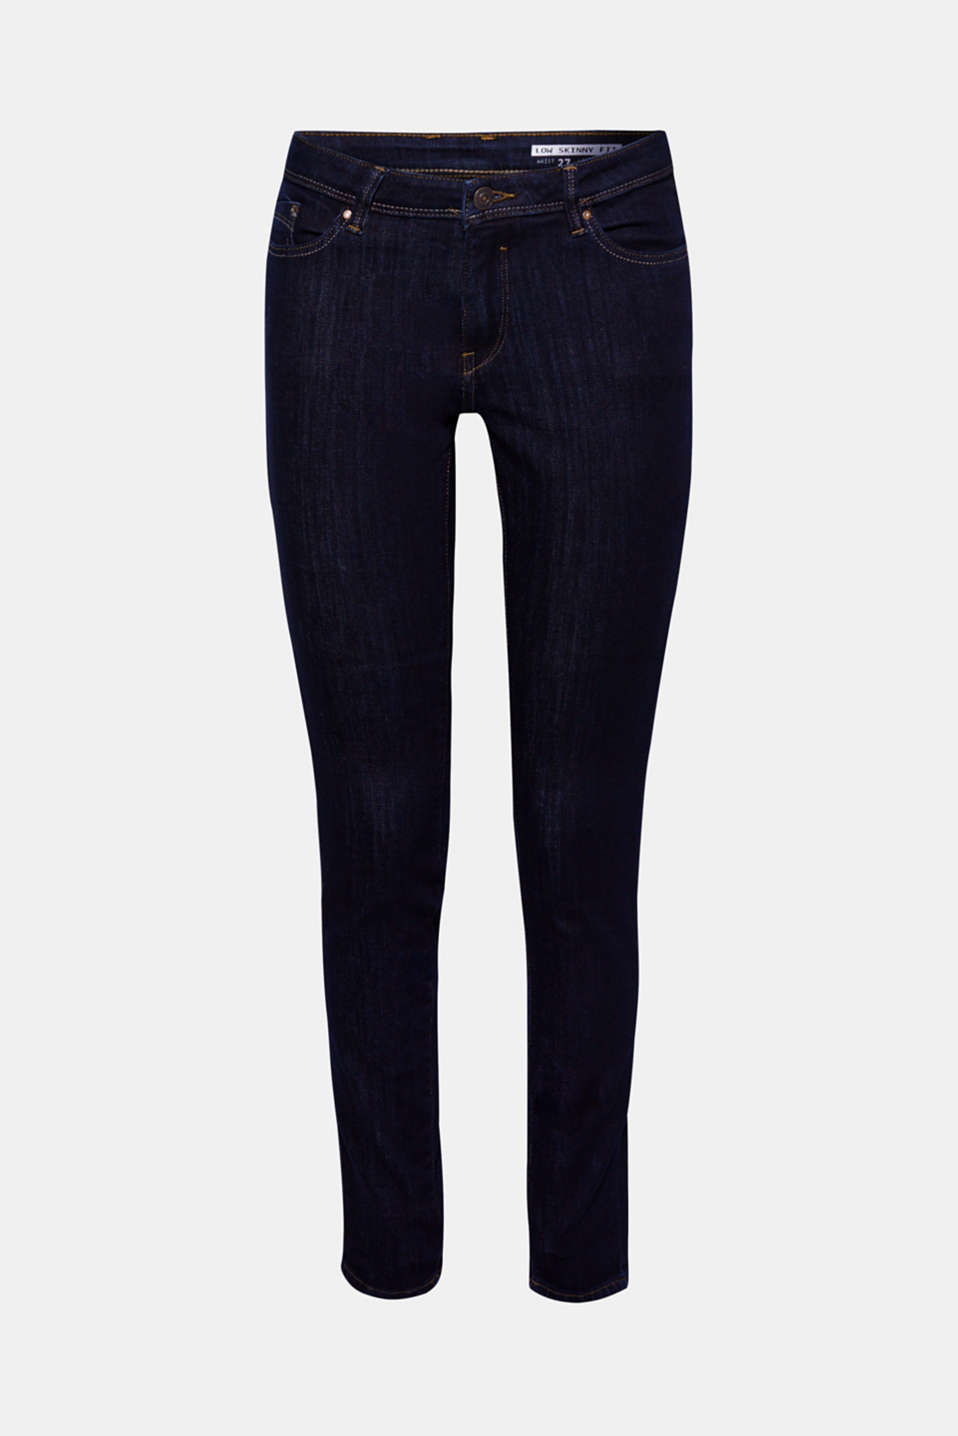 Stretch jeans in dark denim made with organic cotton, BLUE RINSE, detail image number 6